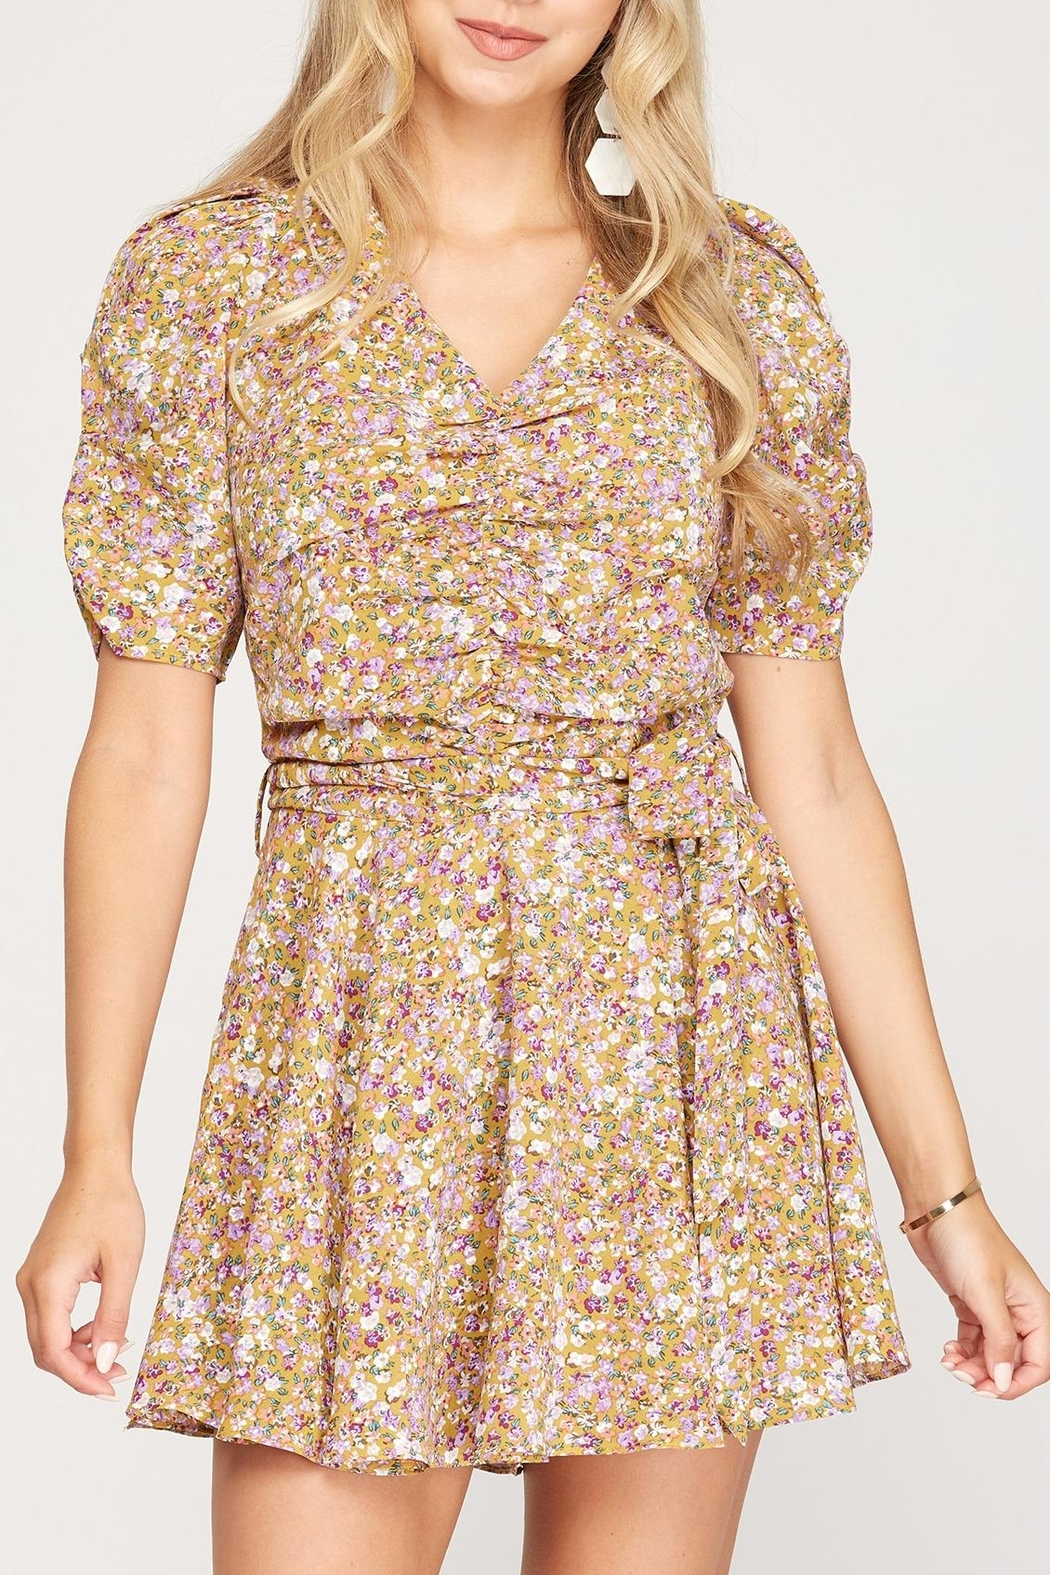 She + Sky Floral Puff Sleeve Romper - Main Image